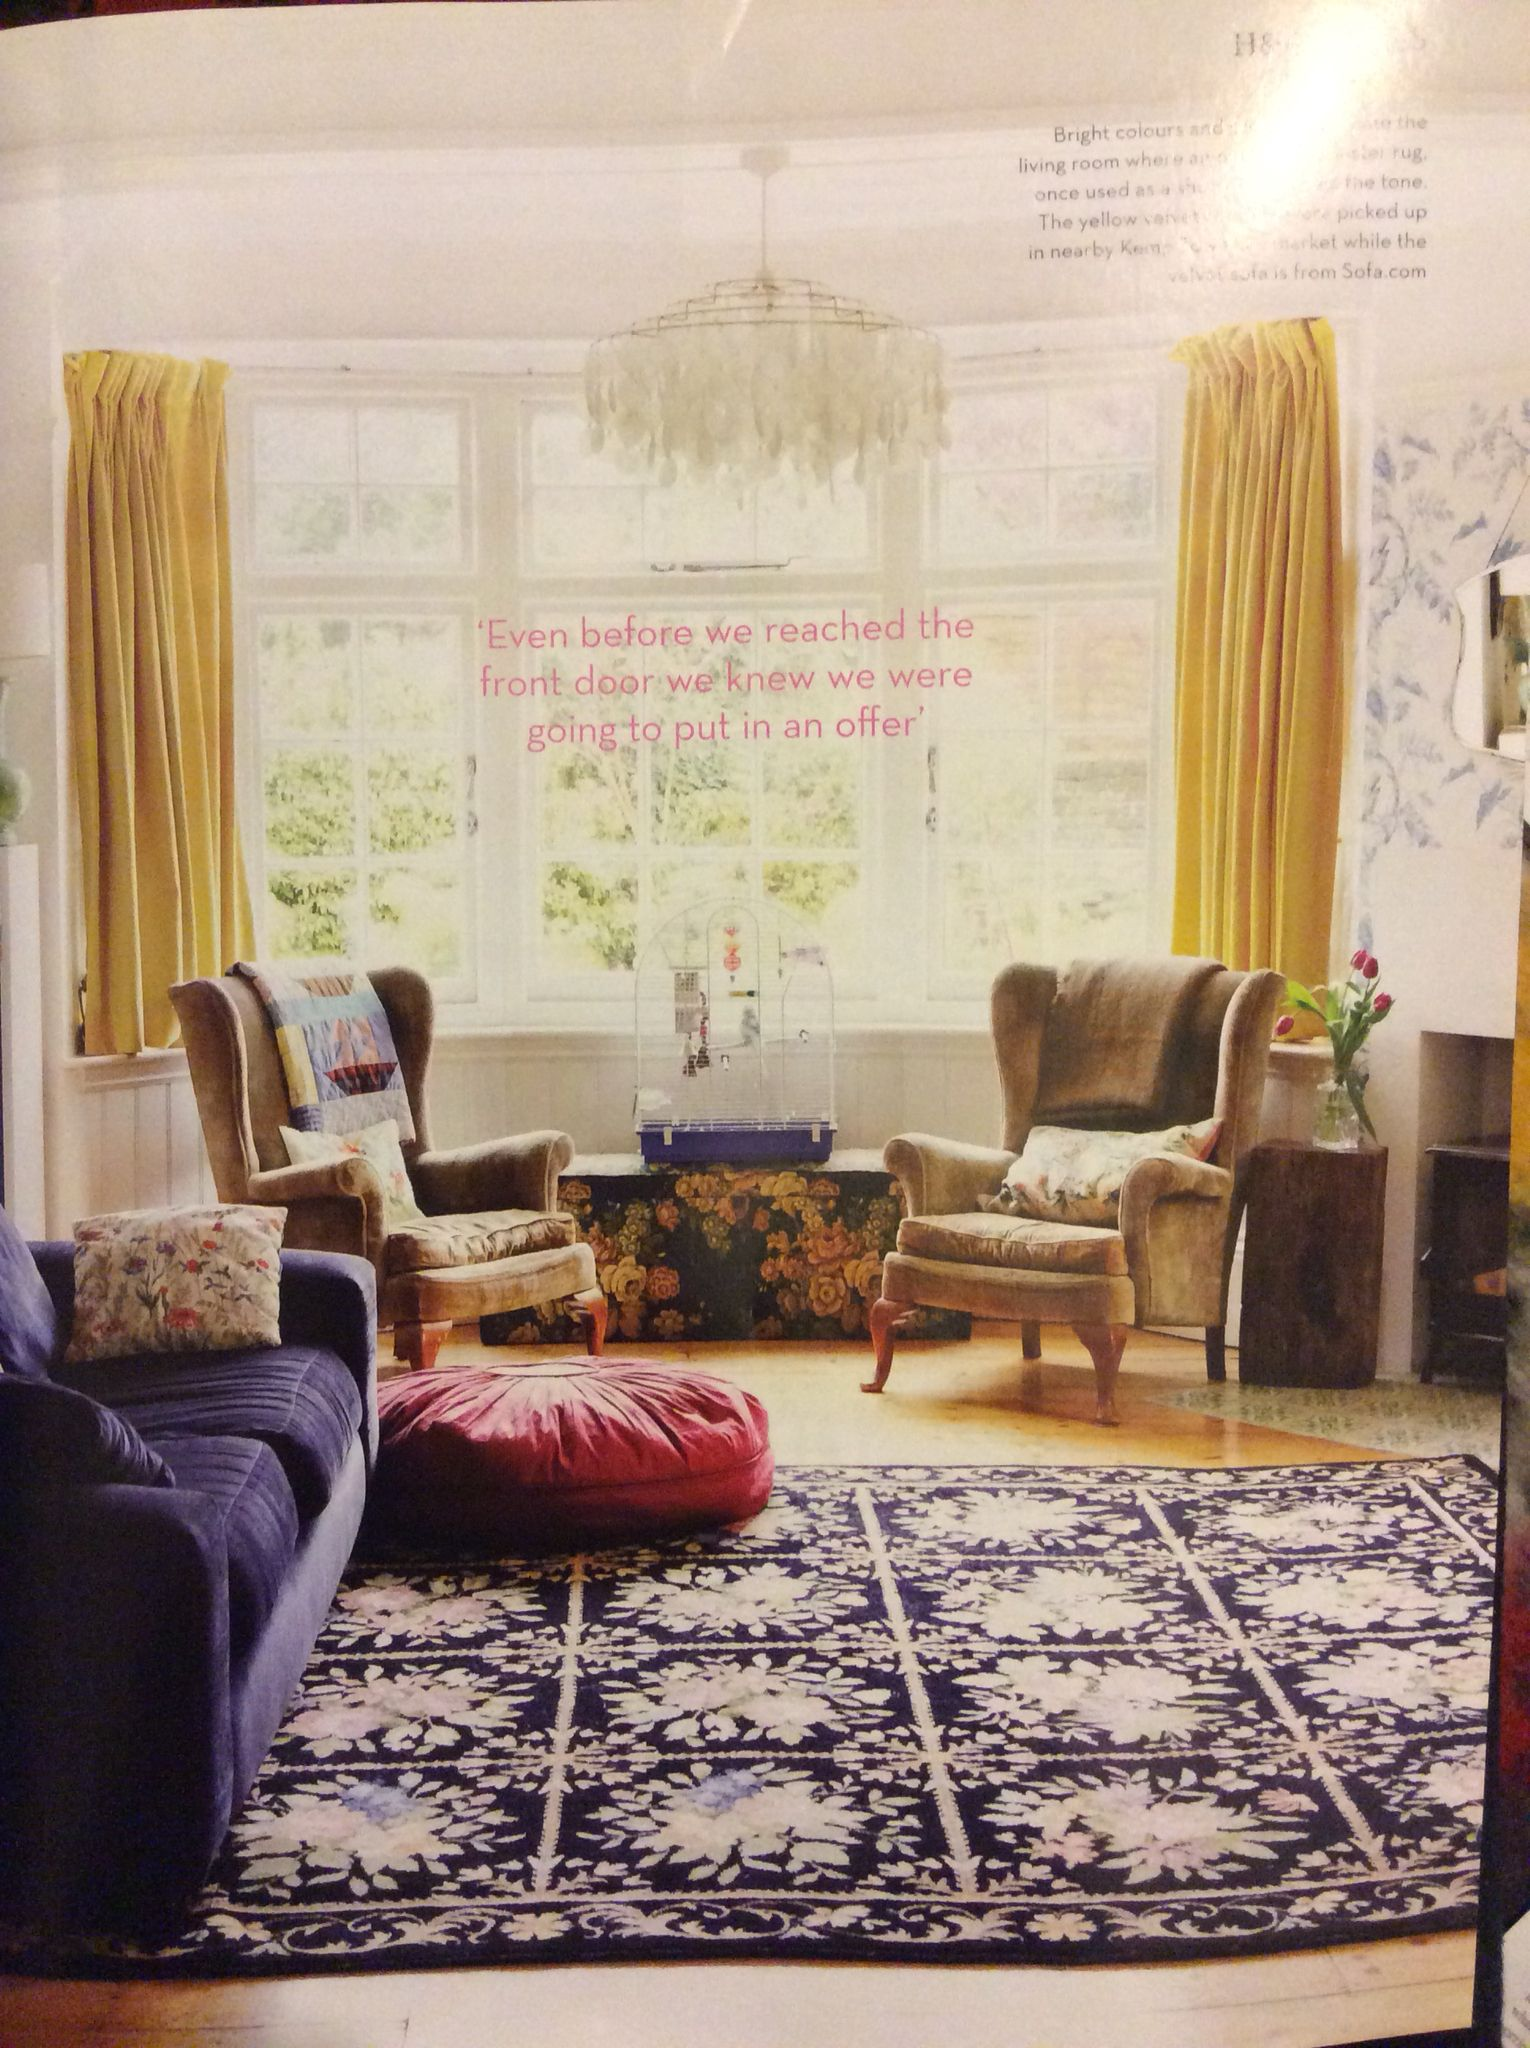 Homes Antiques May 2013 Home Of Garden Designer Sarah